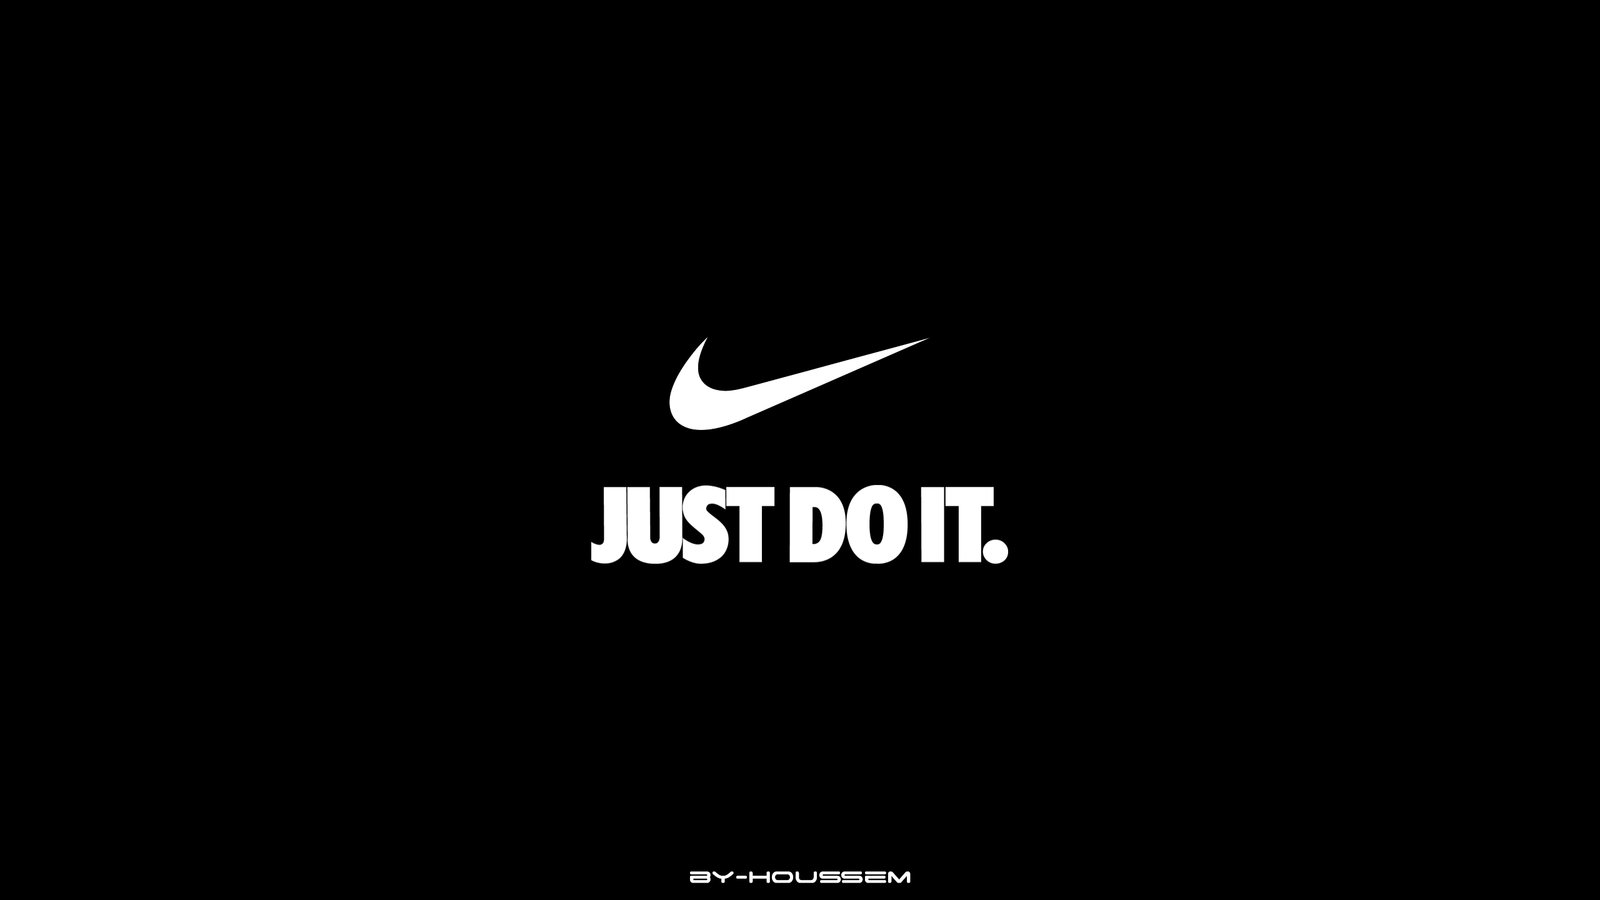 Nike wallpaper just do it wallpapersafari - Nike wallpaper hd ...